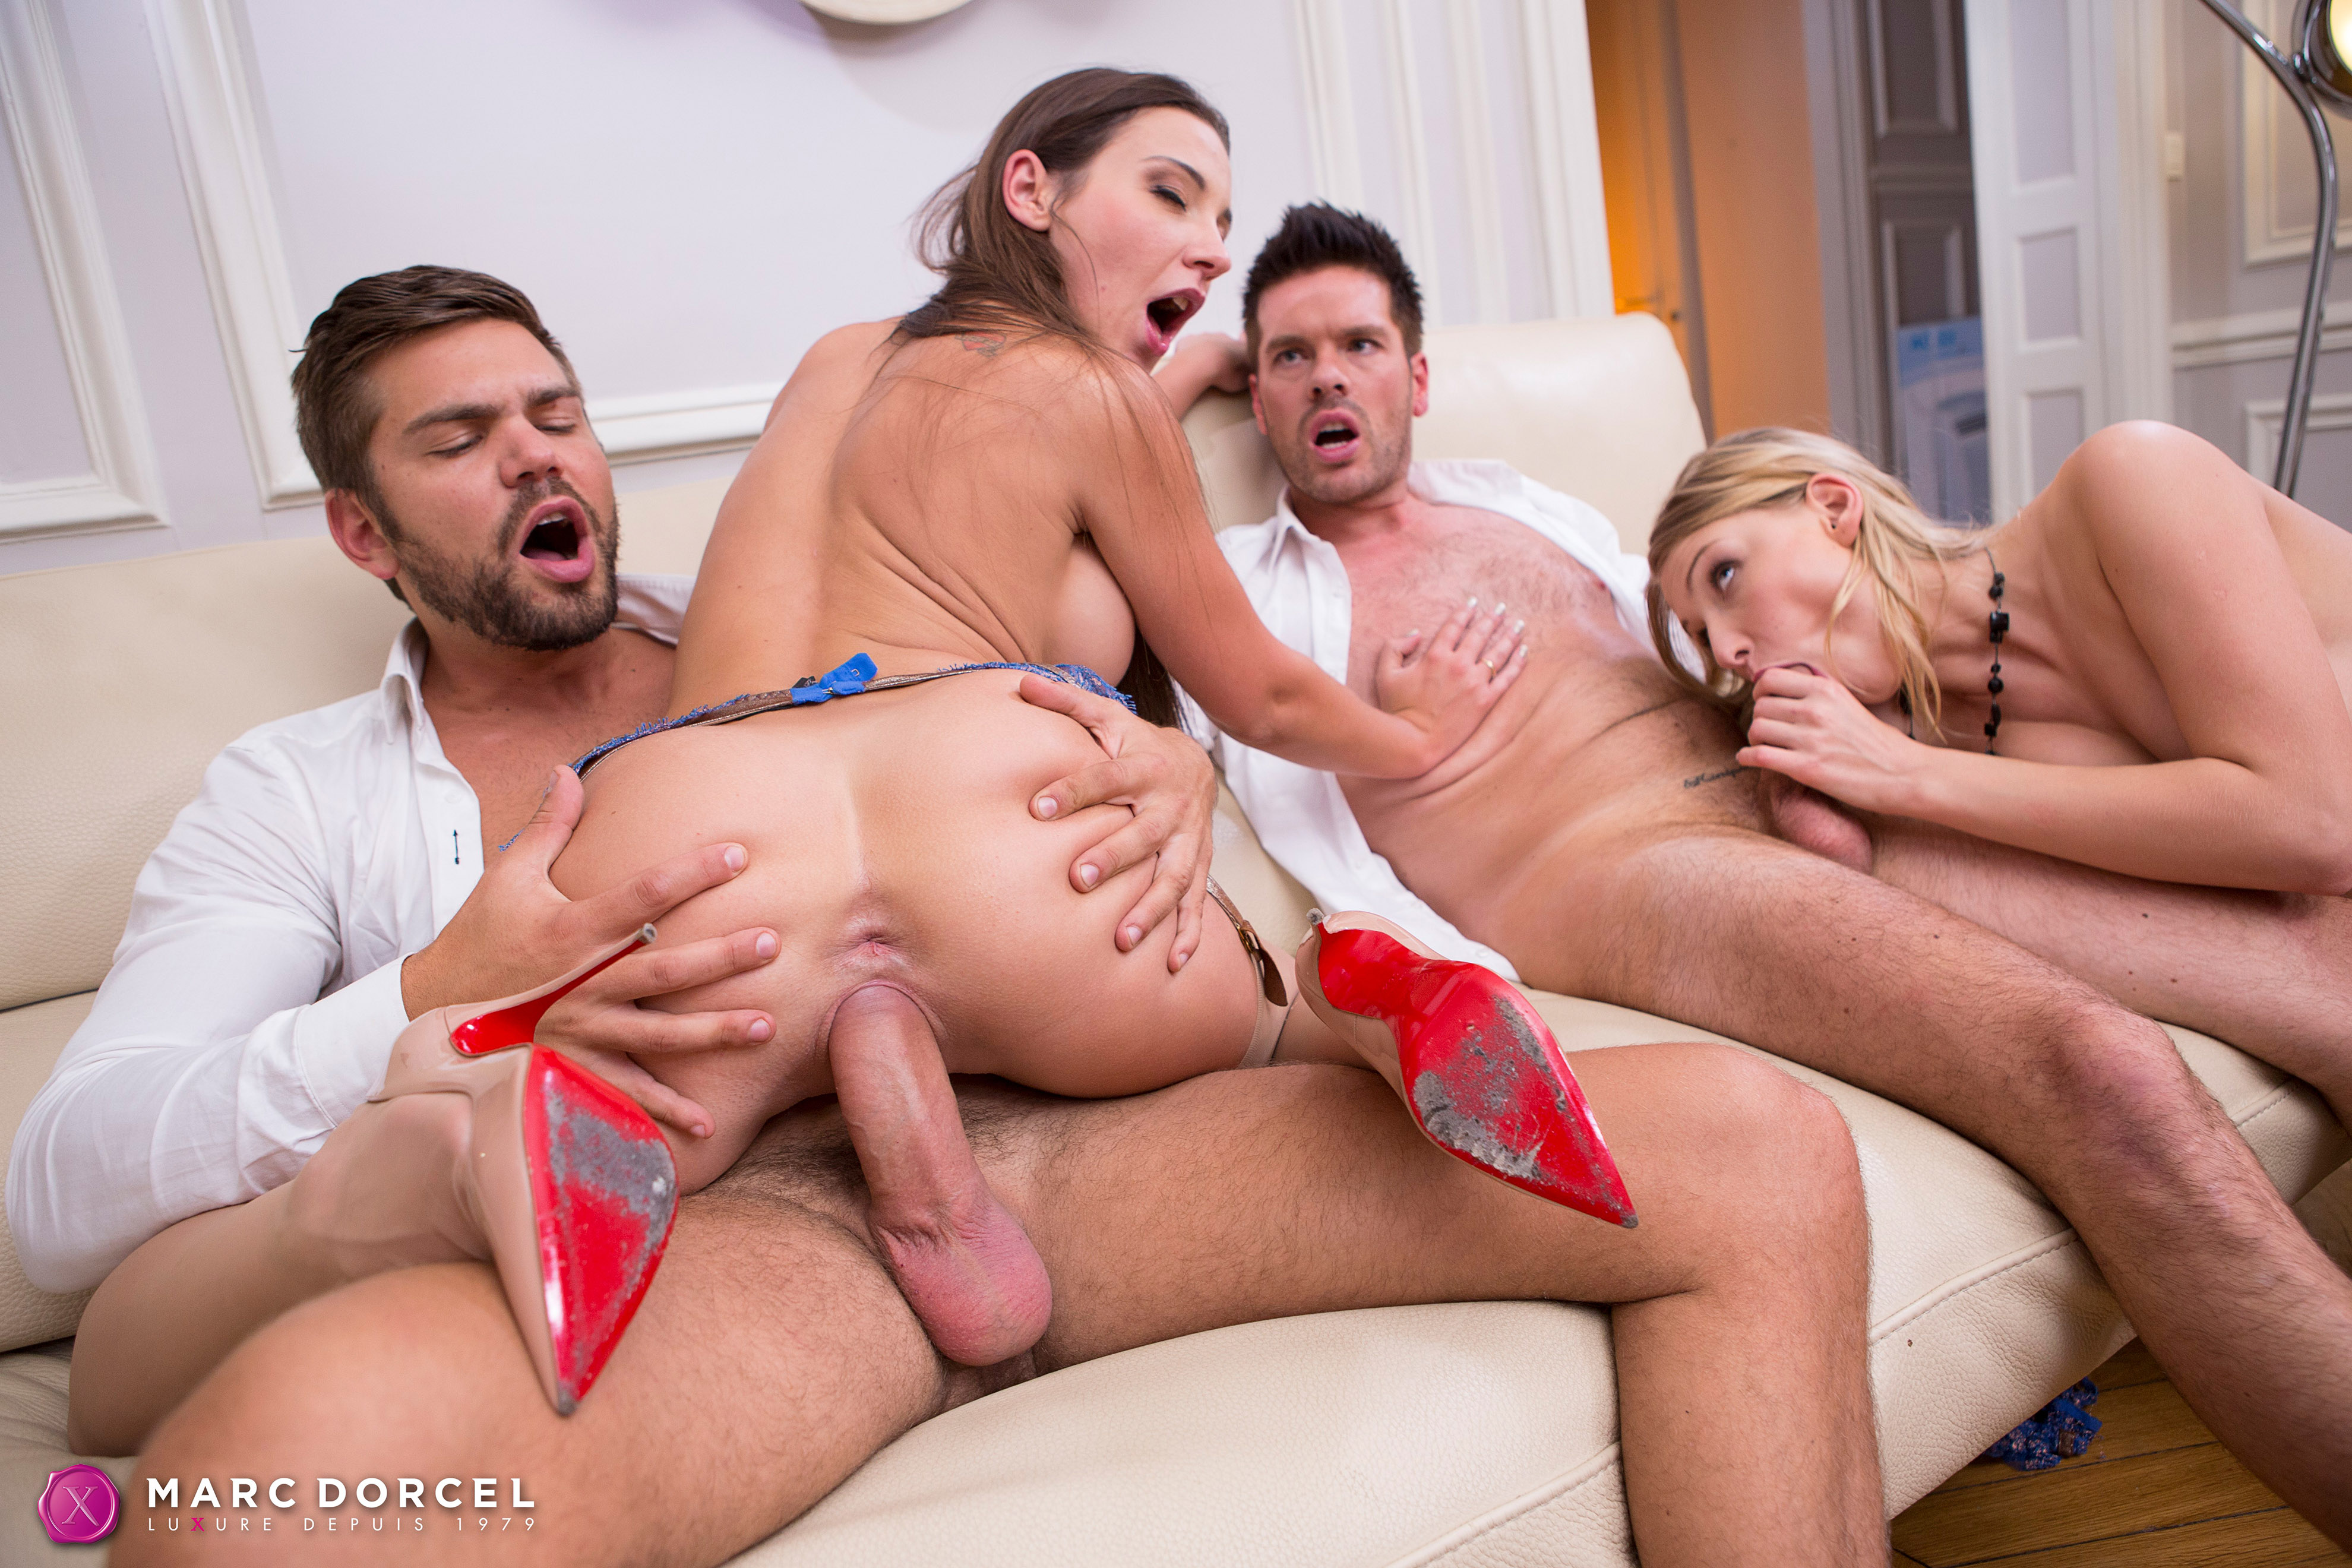 Julie Skyhigh And Lucy Heart In Nice Orgy Between Friends -3691